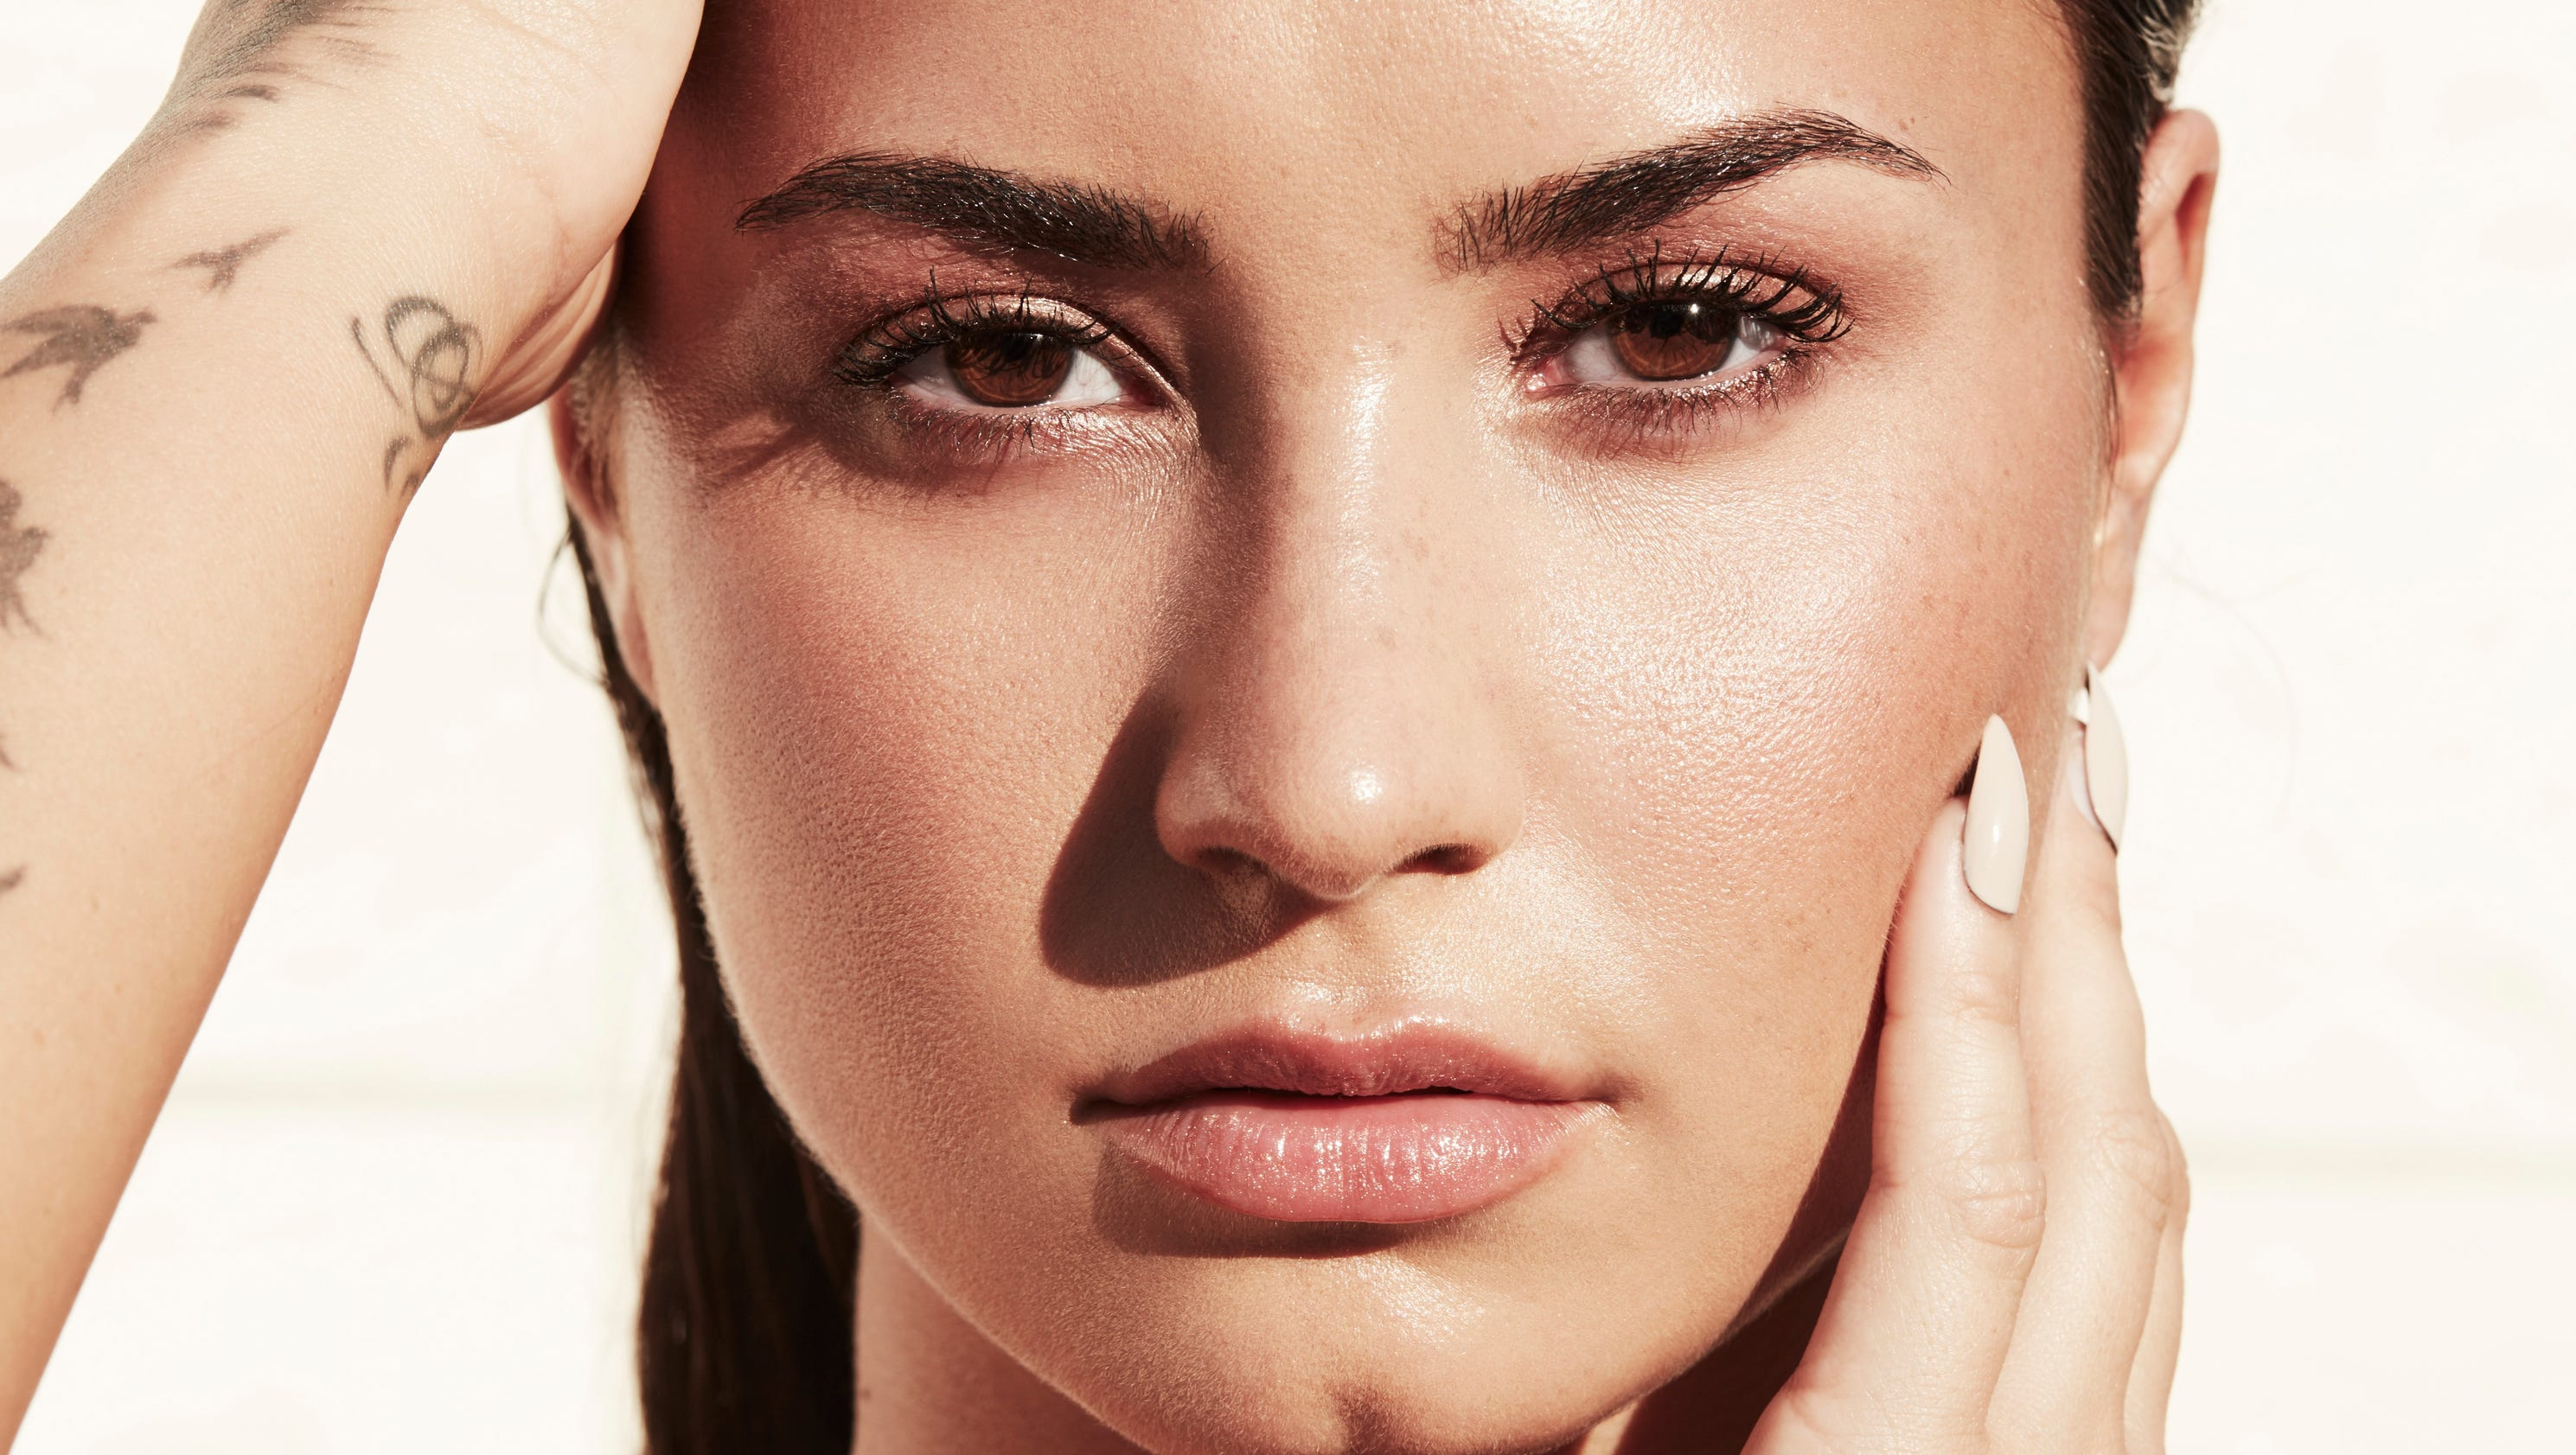 Demi Lovato Pop Star And Advocate Is Ready For New